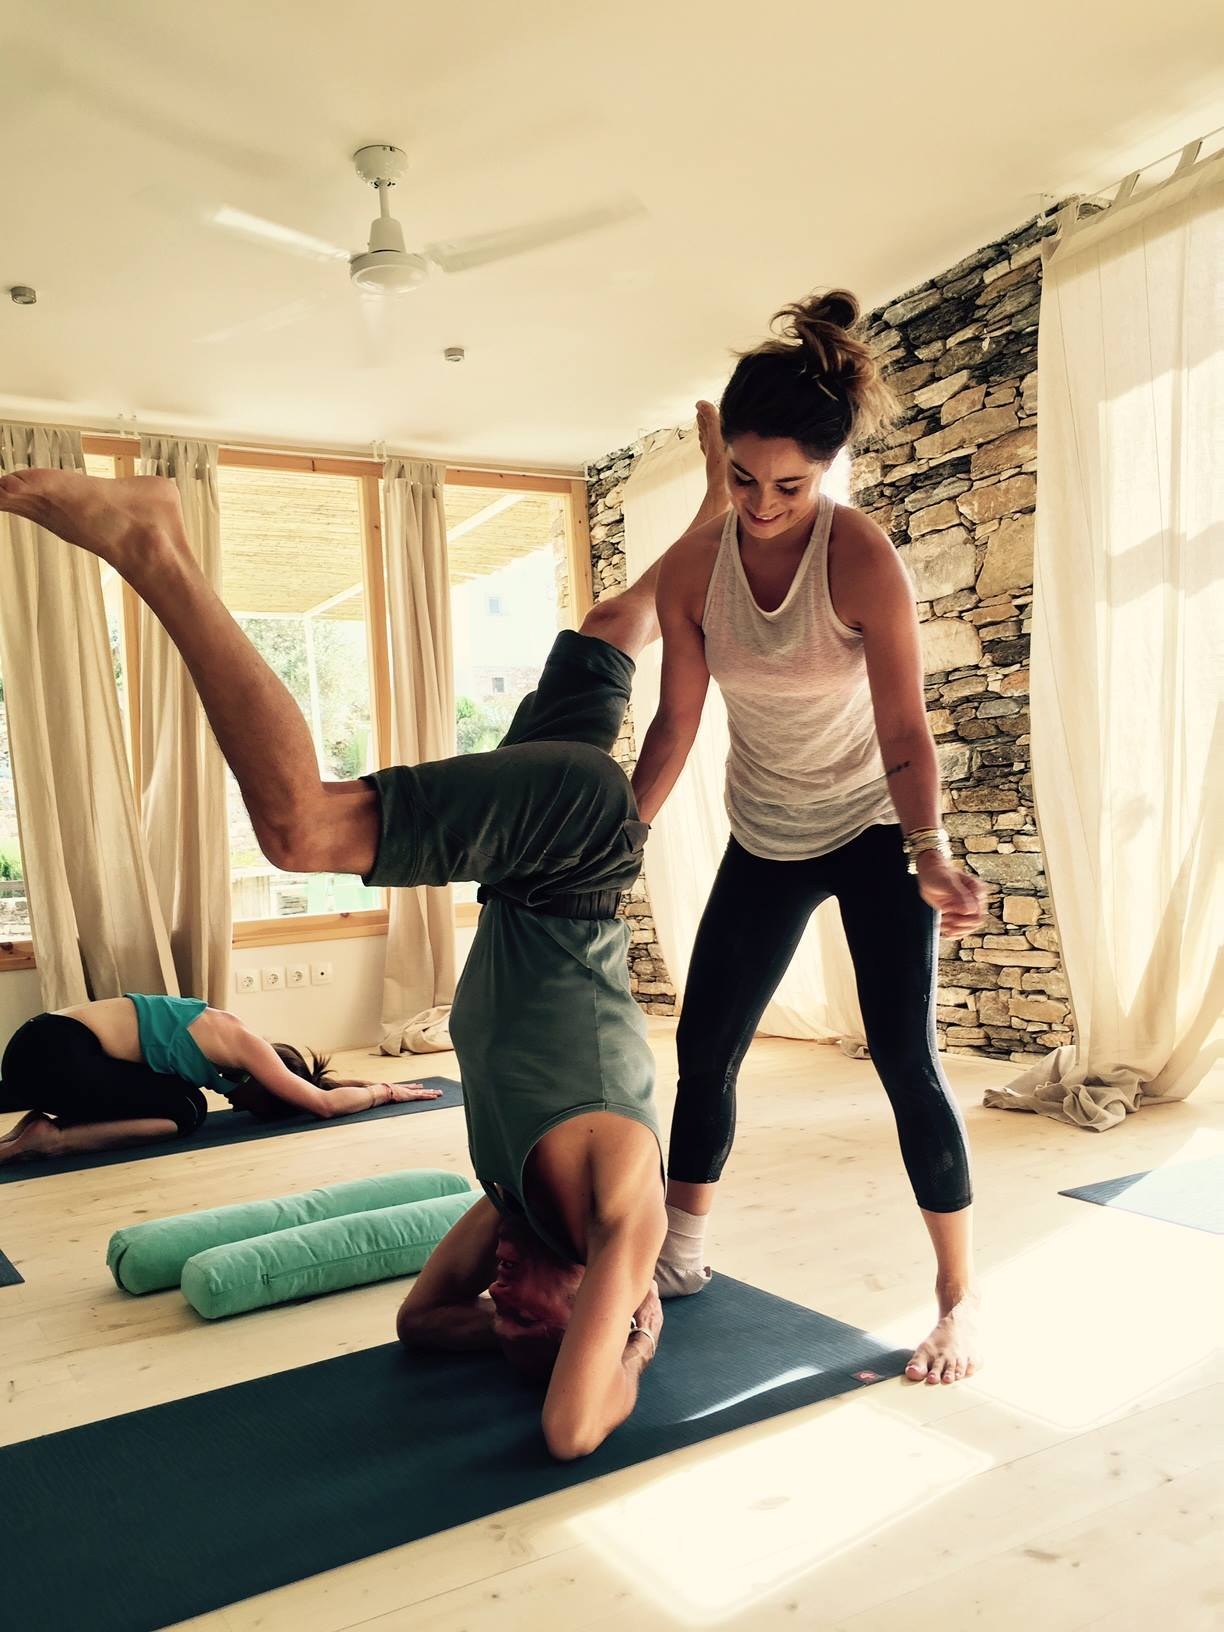 What would you like to tell your yoga teacher?